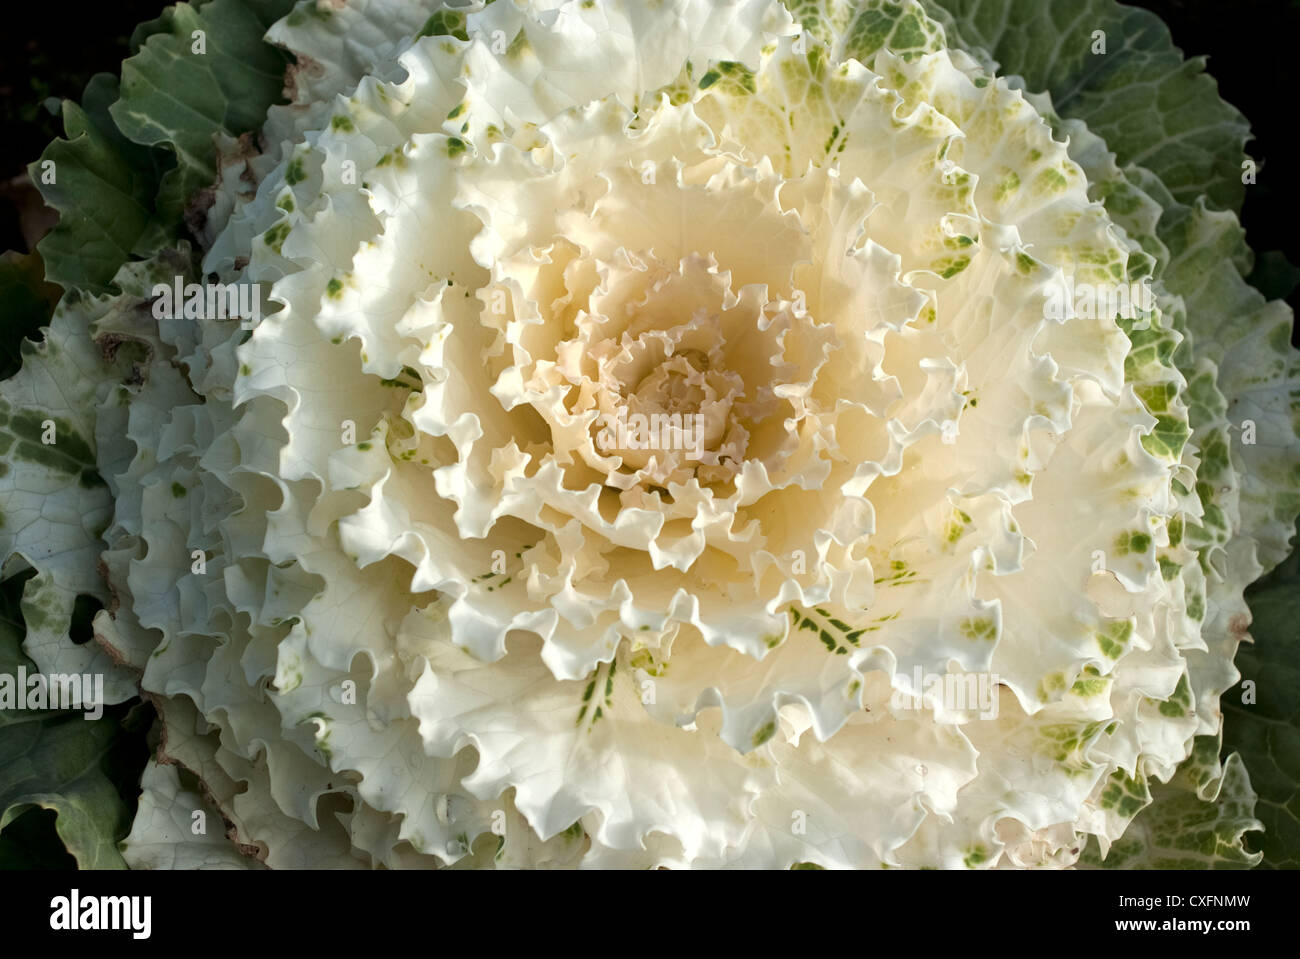 Flower Cabbage Stock Photos Flower Cabbage Stock Images Alamy